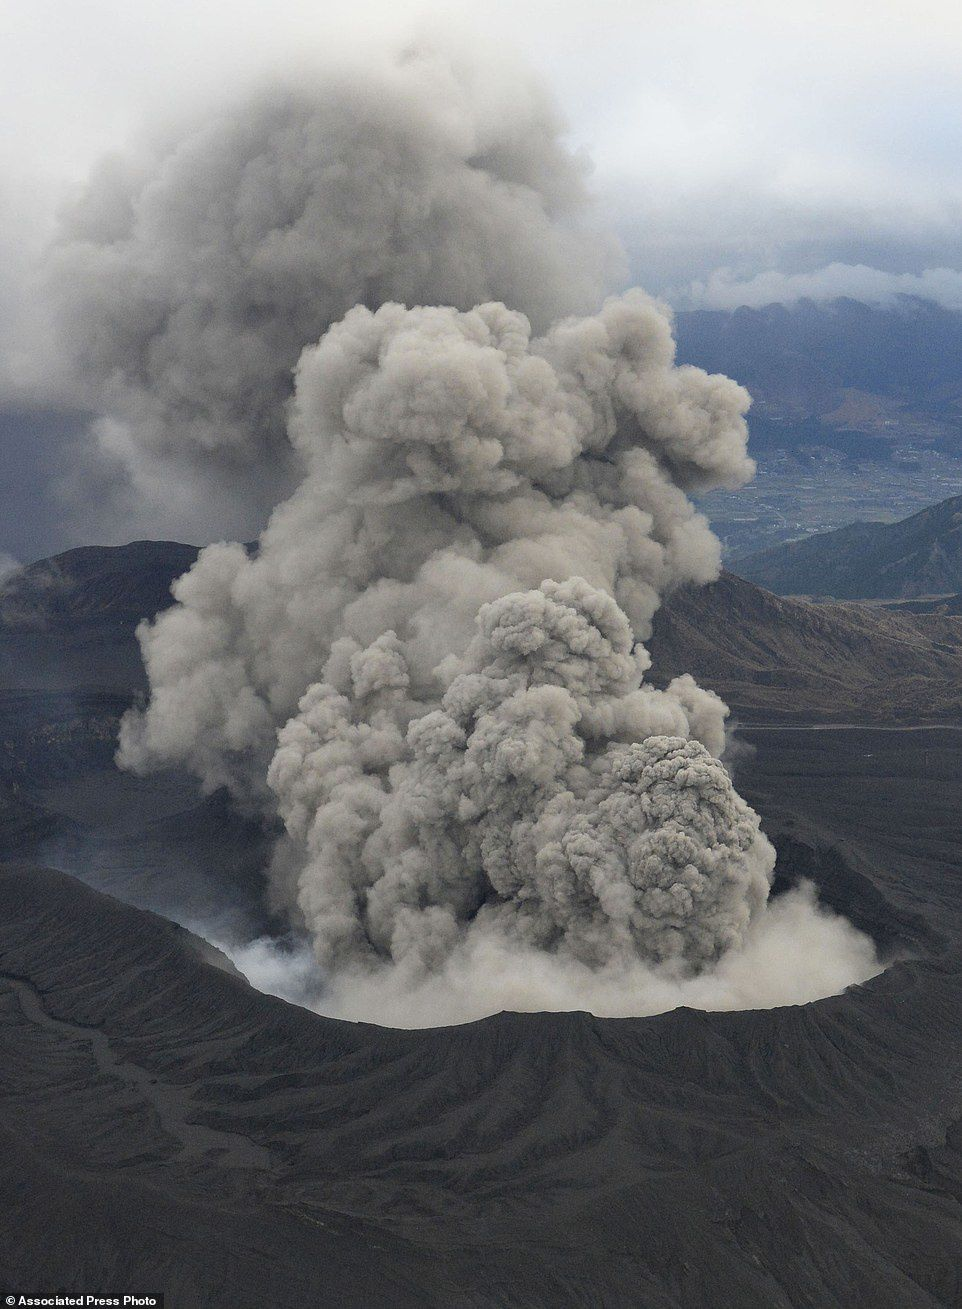 The plume from the eruption of Aso 11/26/2014 - photo Associeted Press